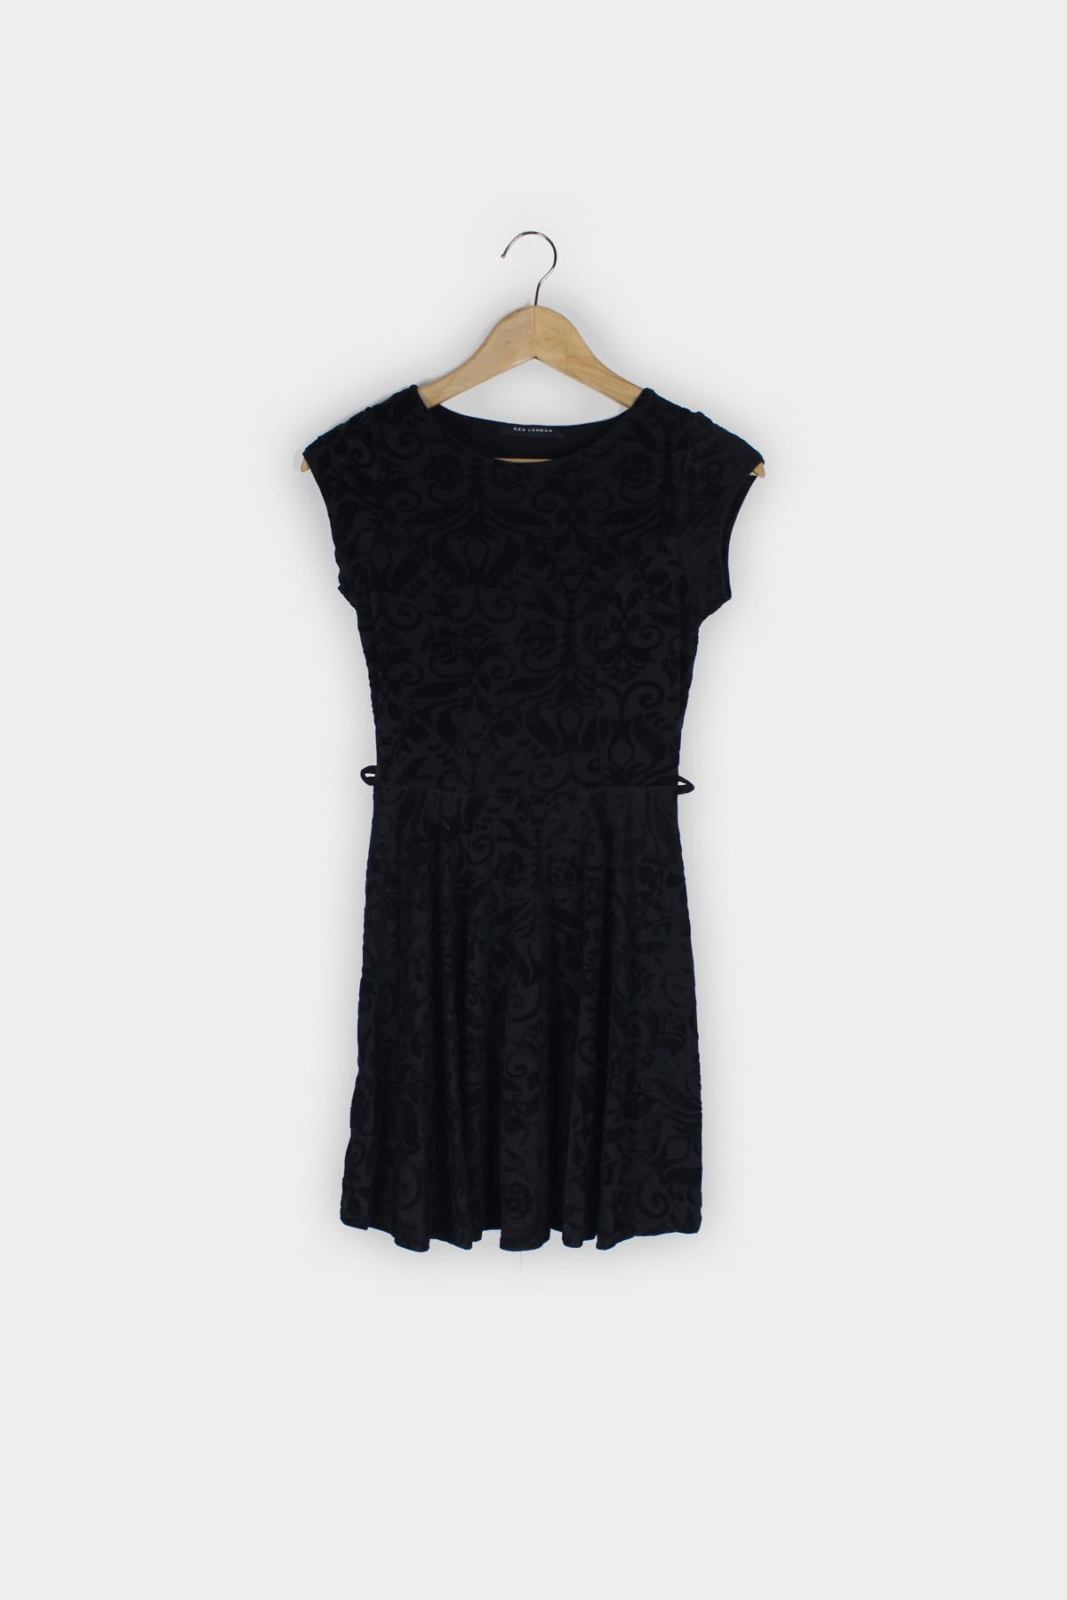 Second-hand Clothing - Sale, Women, Dresses, Second-Hand Clothing